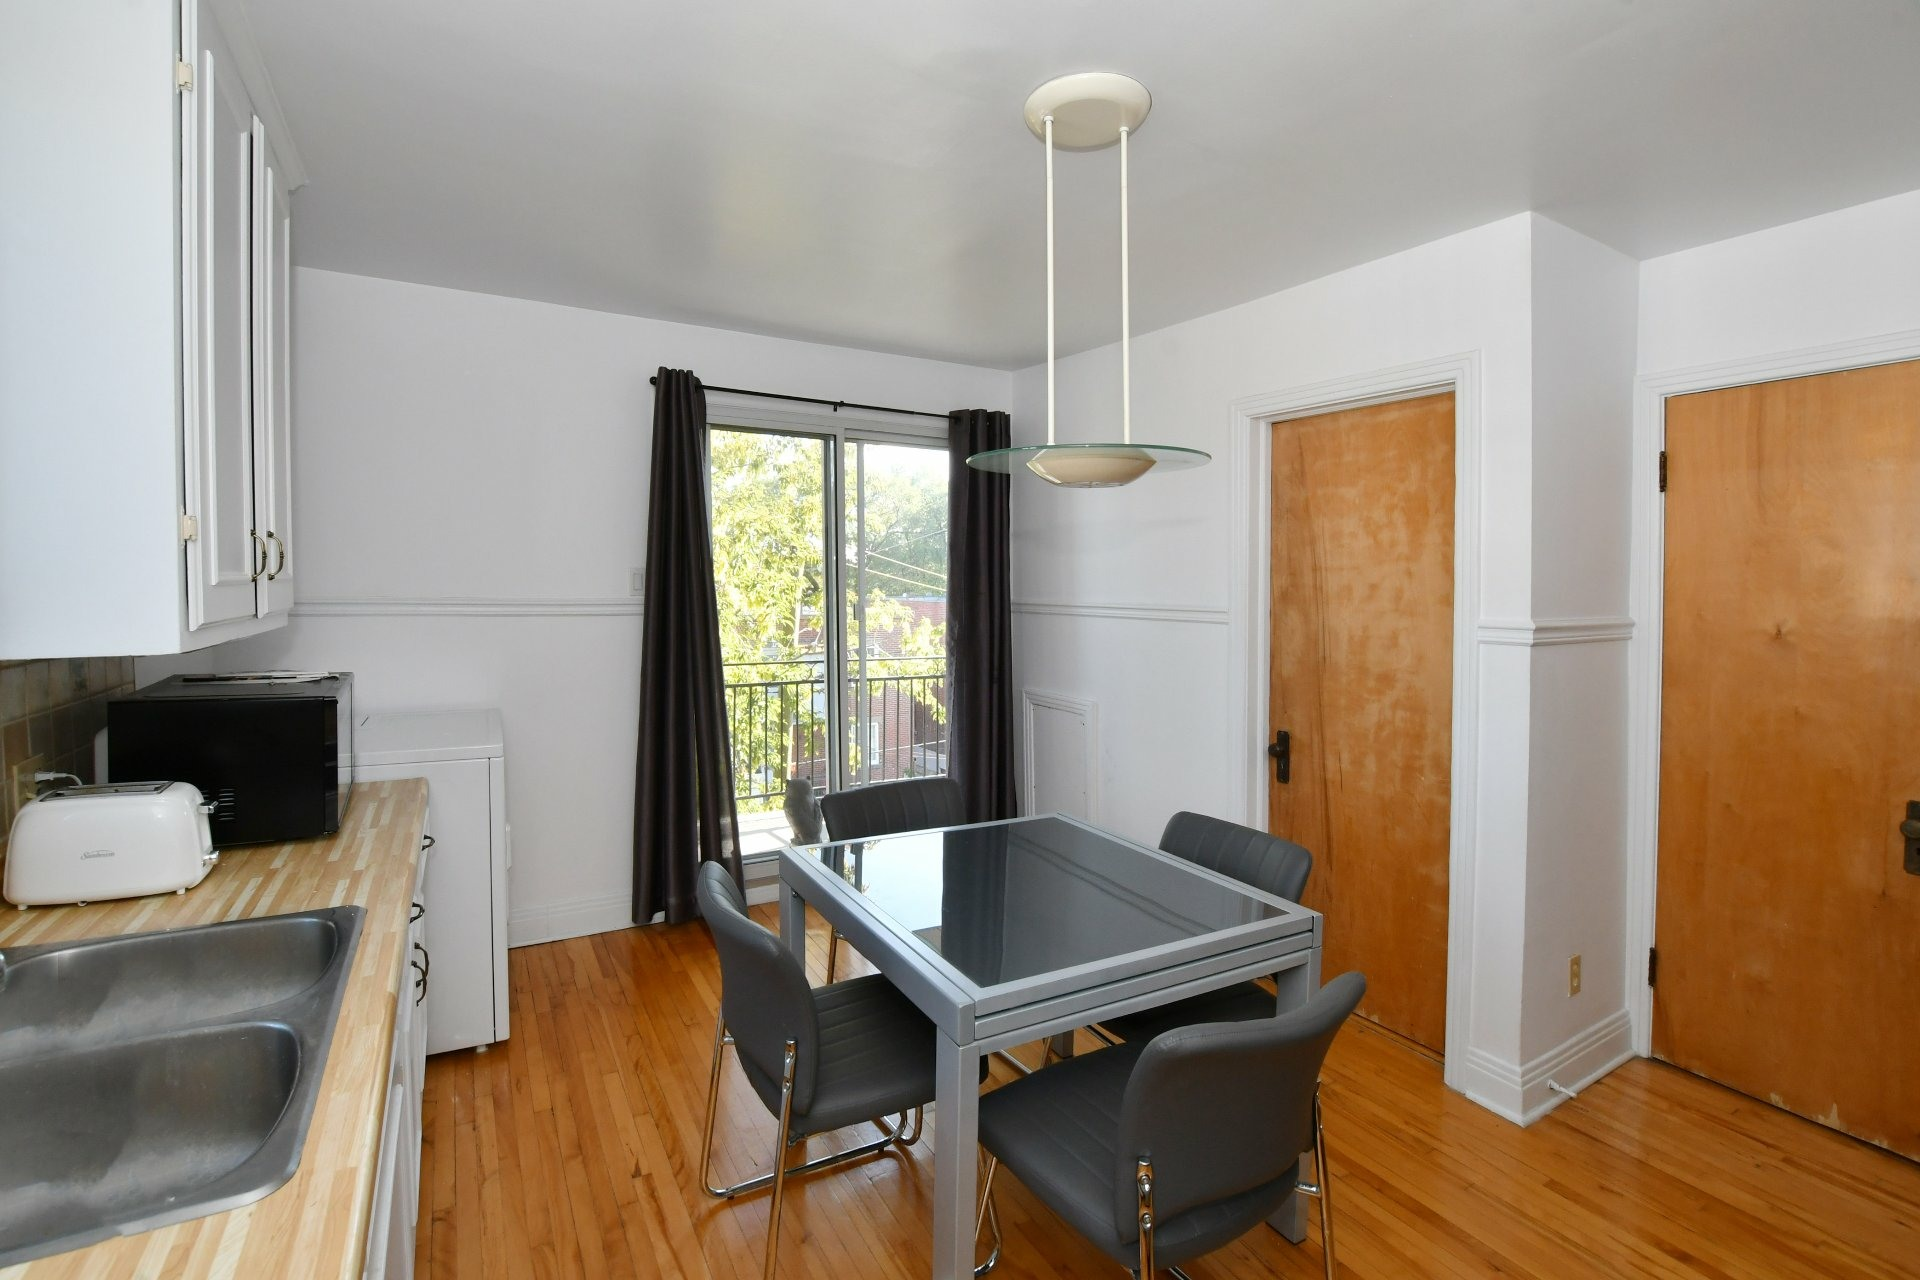 image 4 - Income property For sale Villeray/Saint-Michel/Parc-Extension Montréal  - 4 rooms